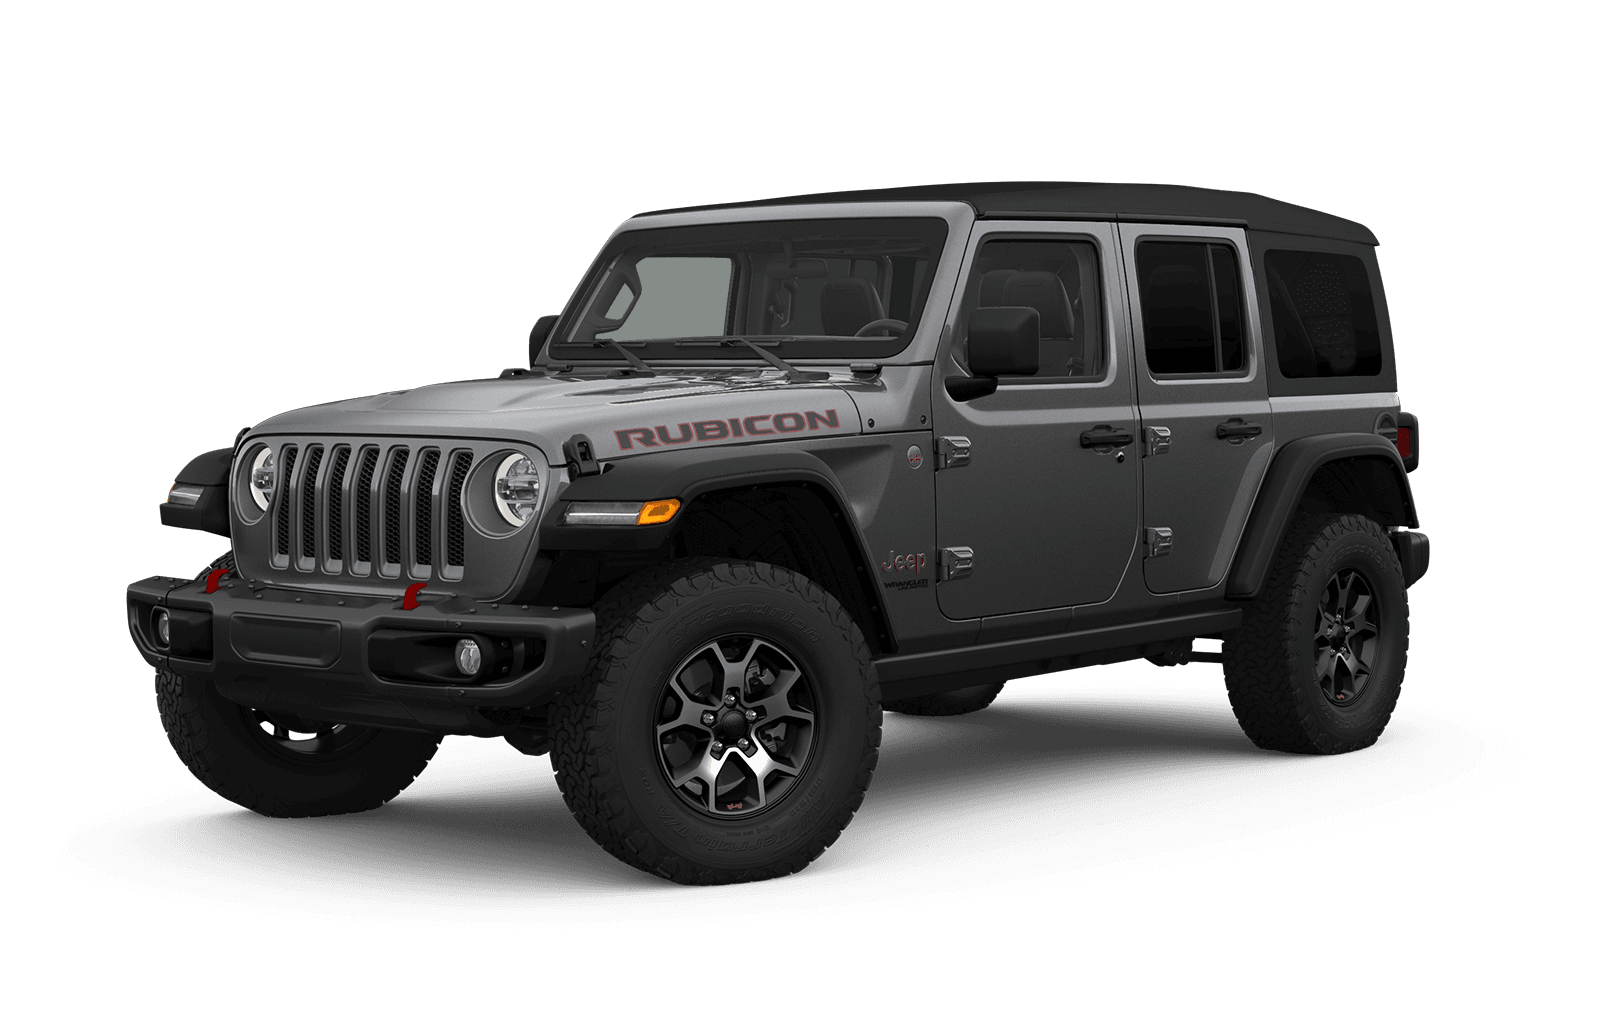 2019 Jeep Wrangler Full View in dark Grey with Wheels